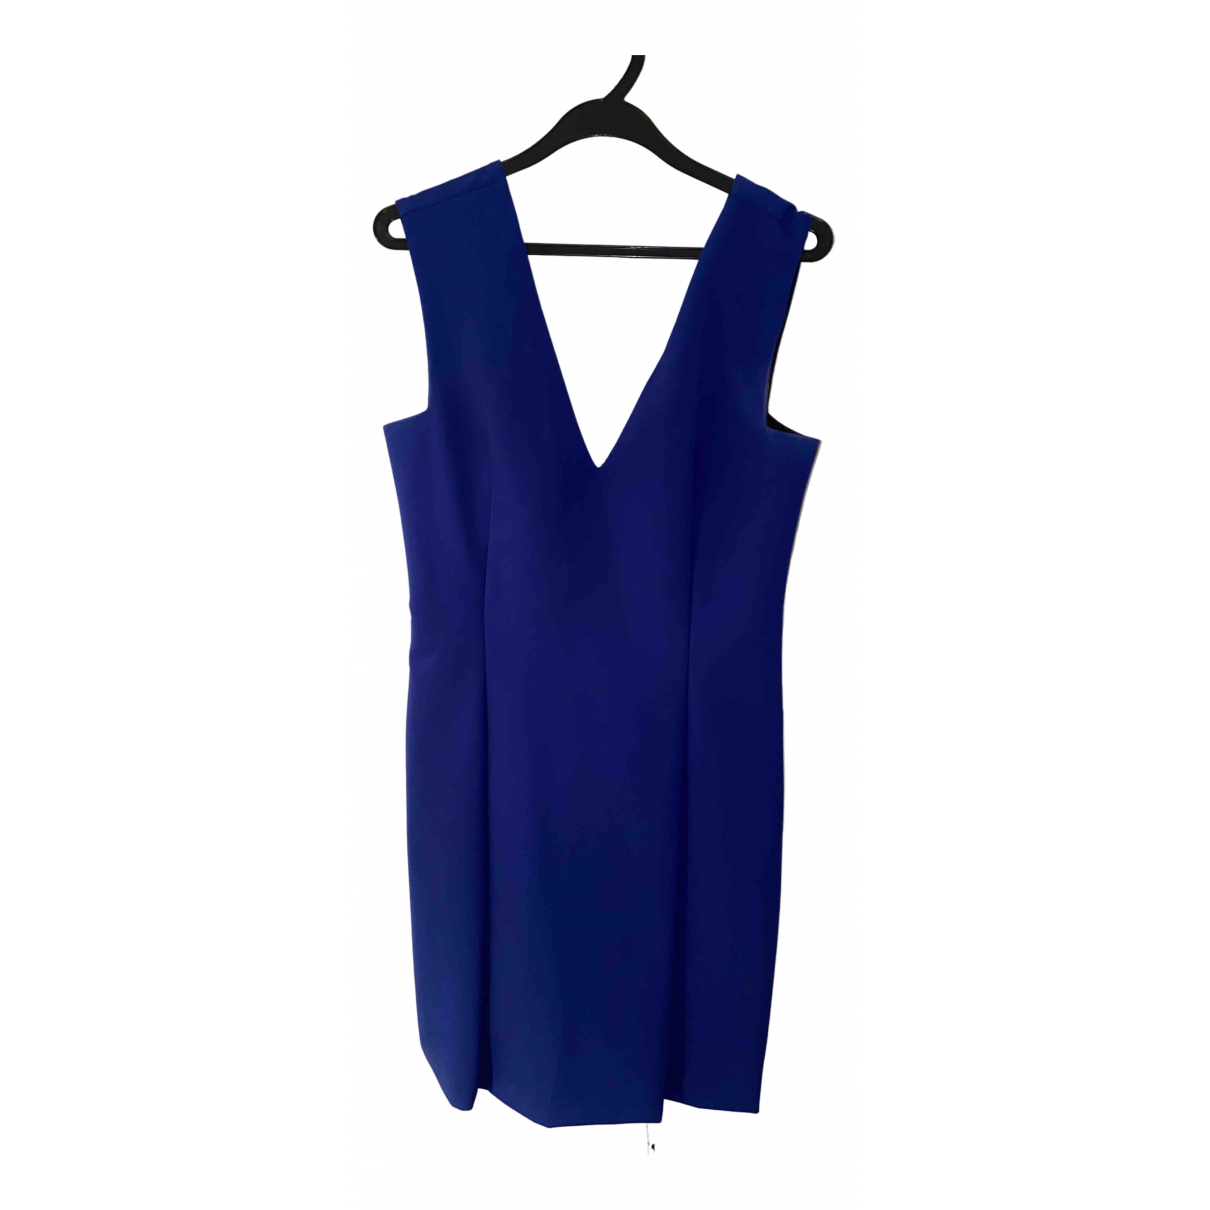 Zara \N Kleid in  Blau Synthetik